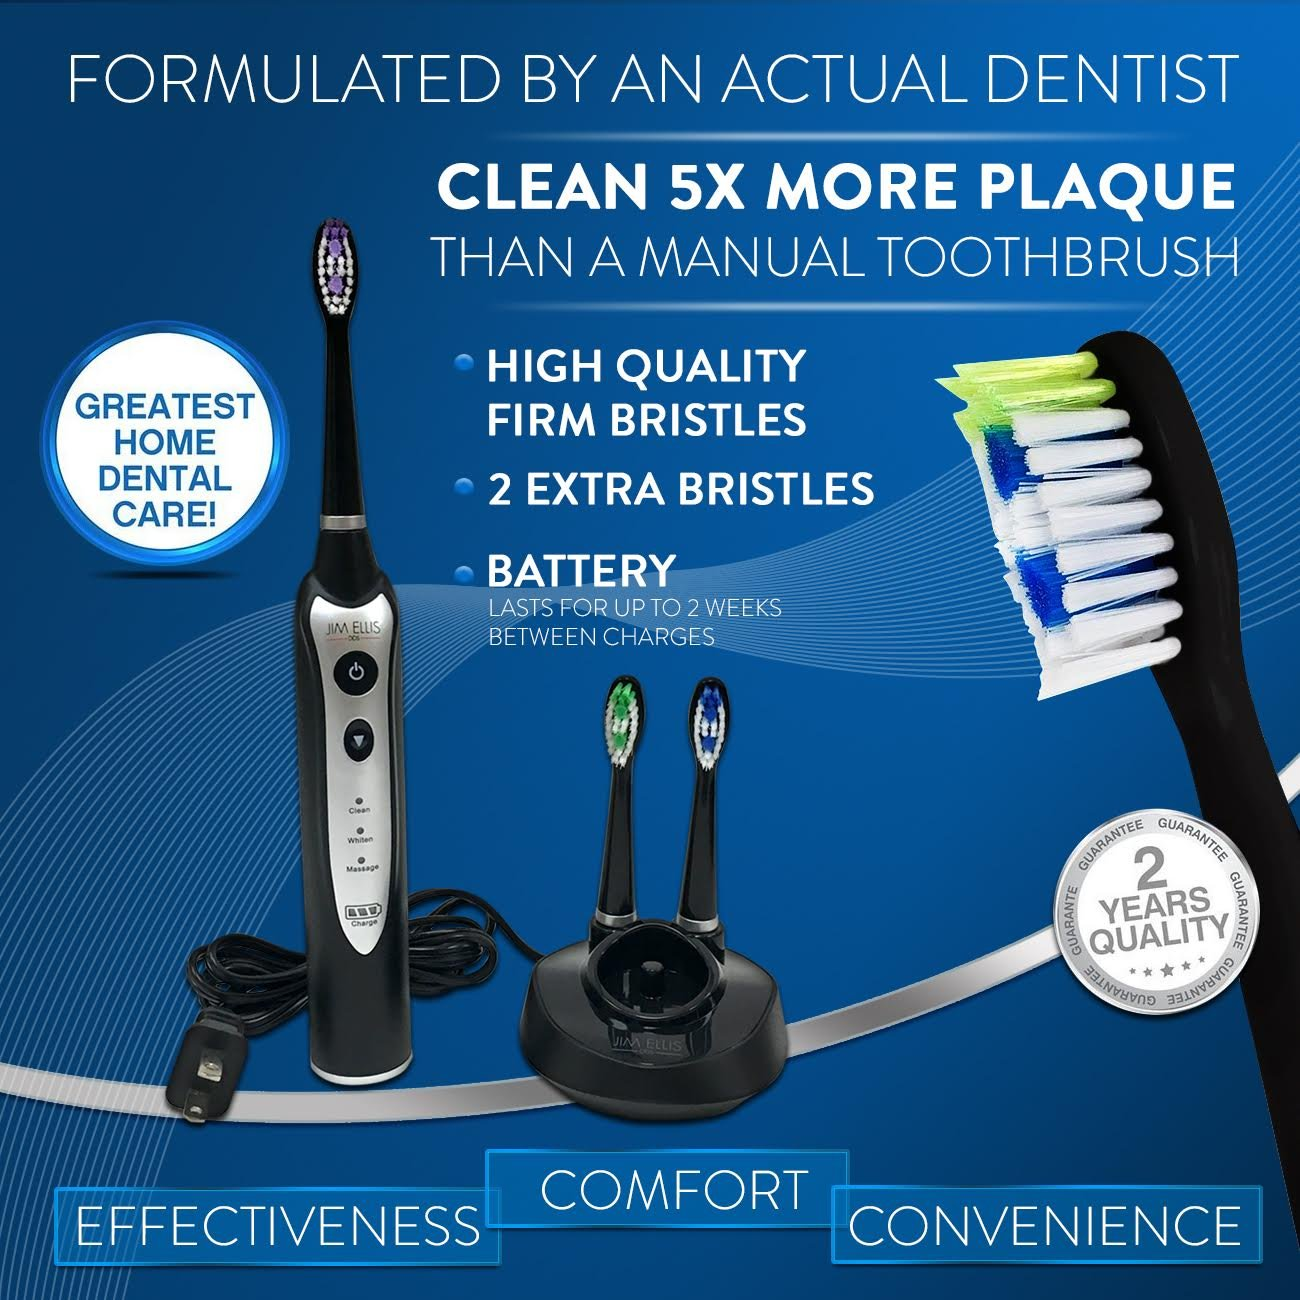 Brushing new toothbrush claims to clean teeth in 6 seconds abc news - Amazon Com Electric Toothbrush By Dr Jim Ellis For Superior Dental Hygiene Health Personal Care